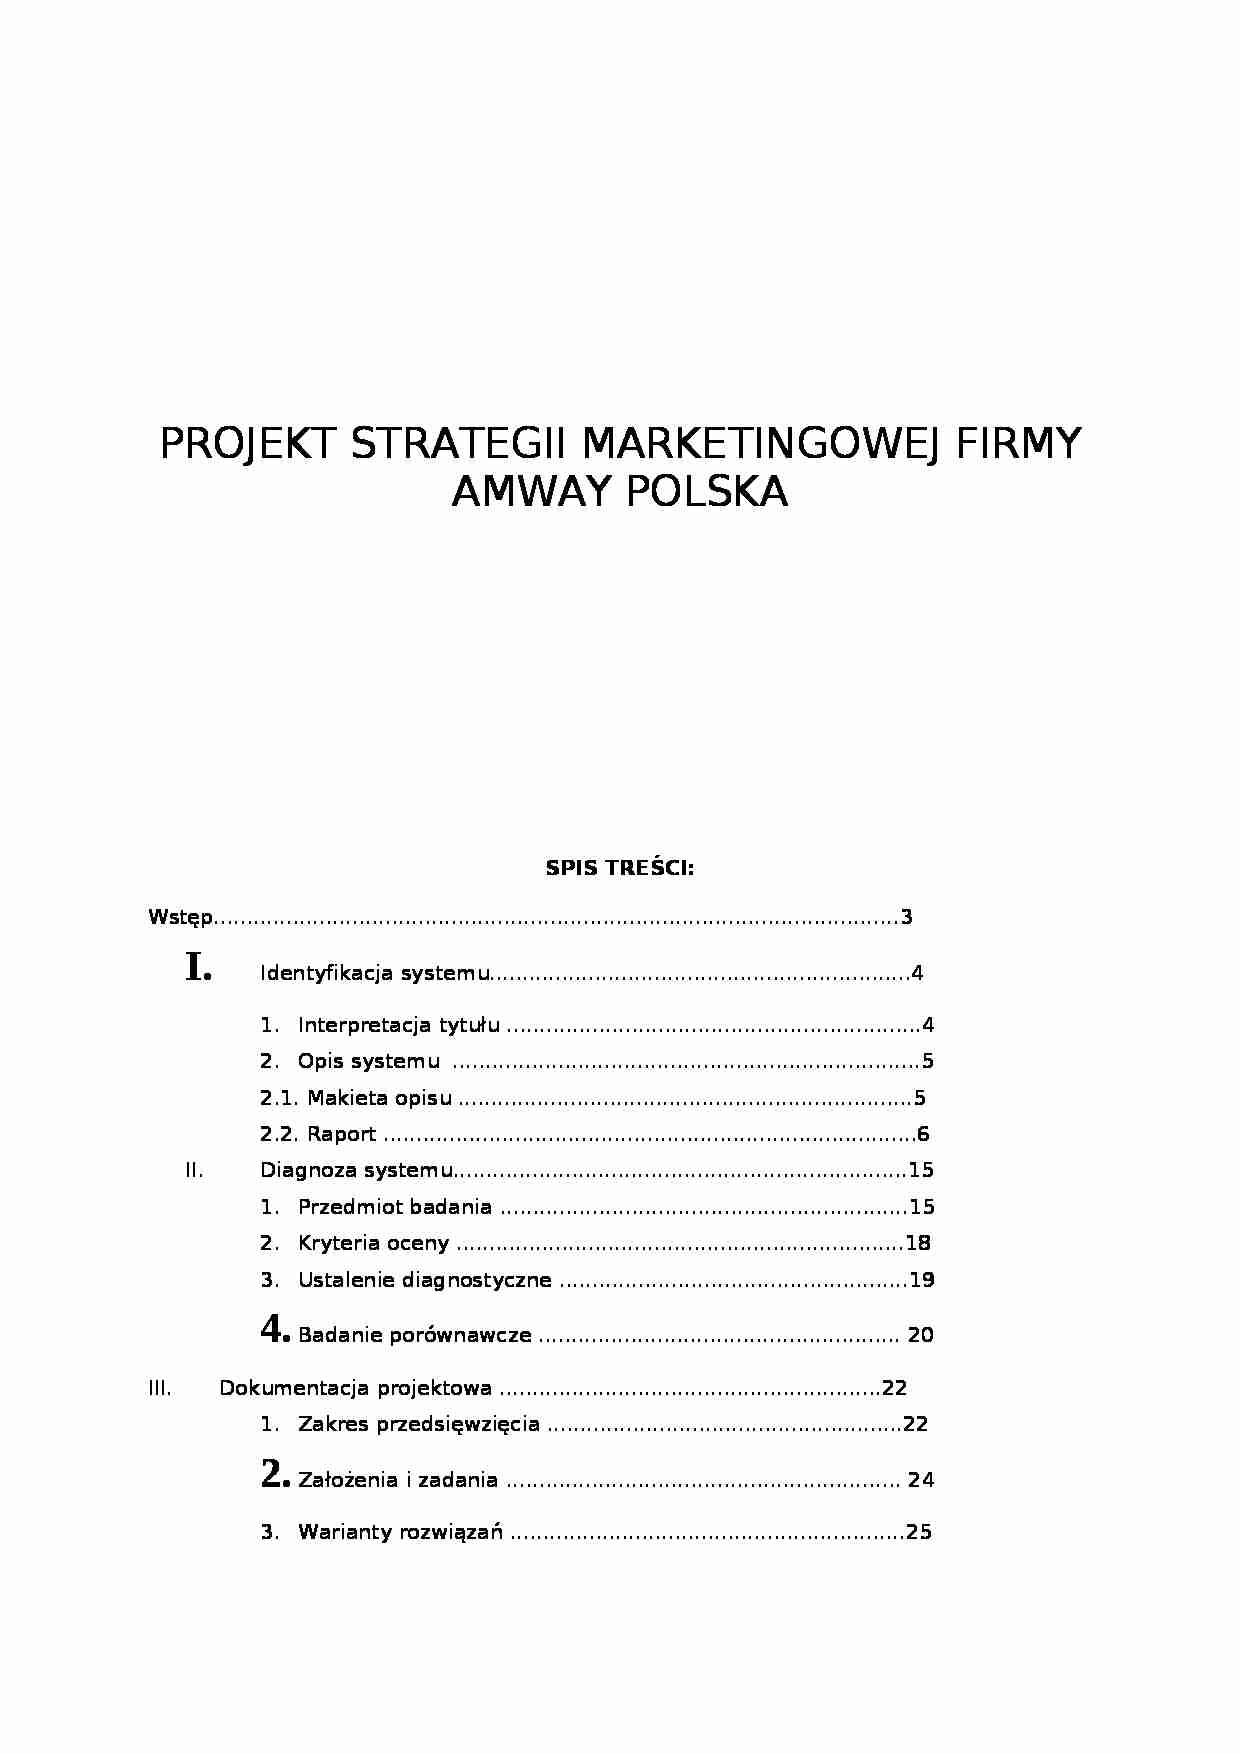 Projekt strategii marketingowej - strona 1